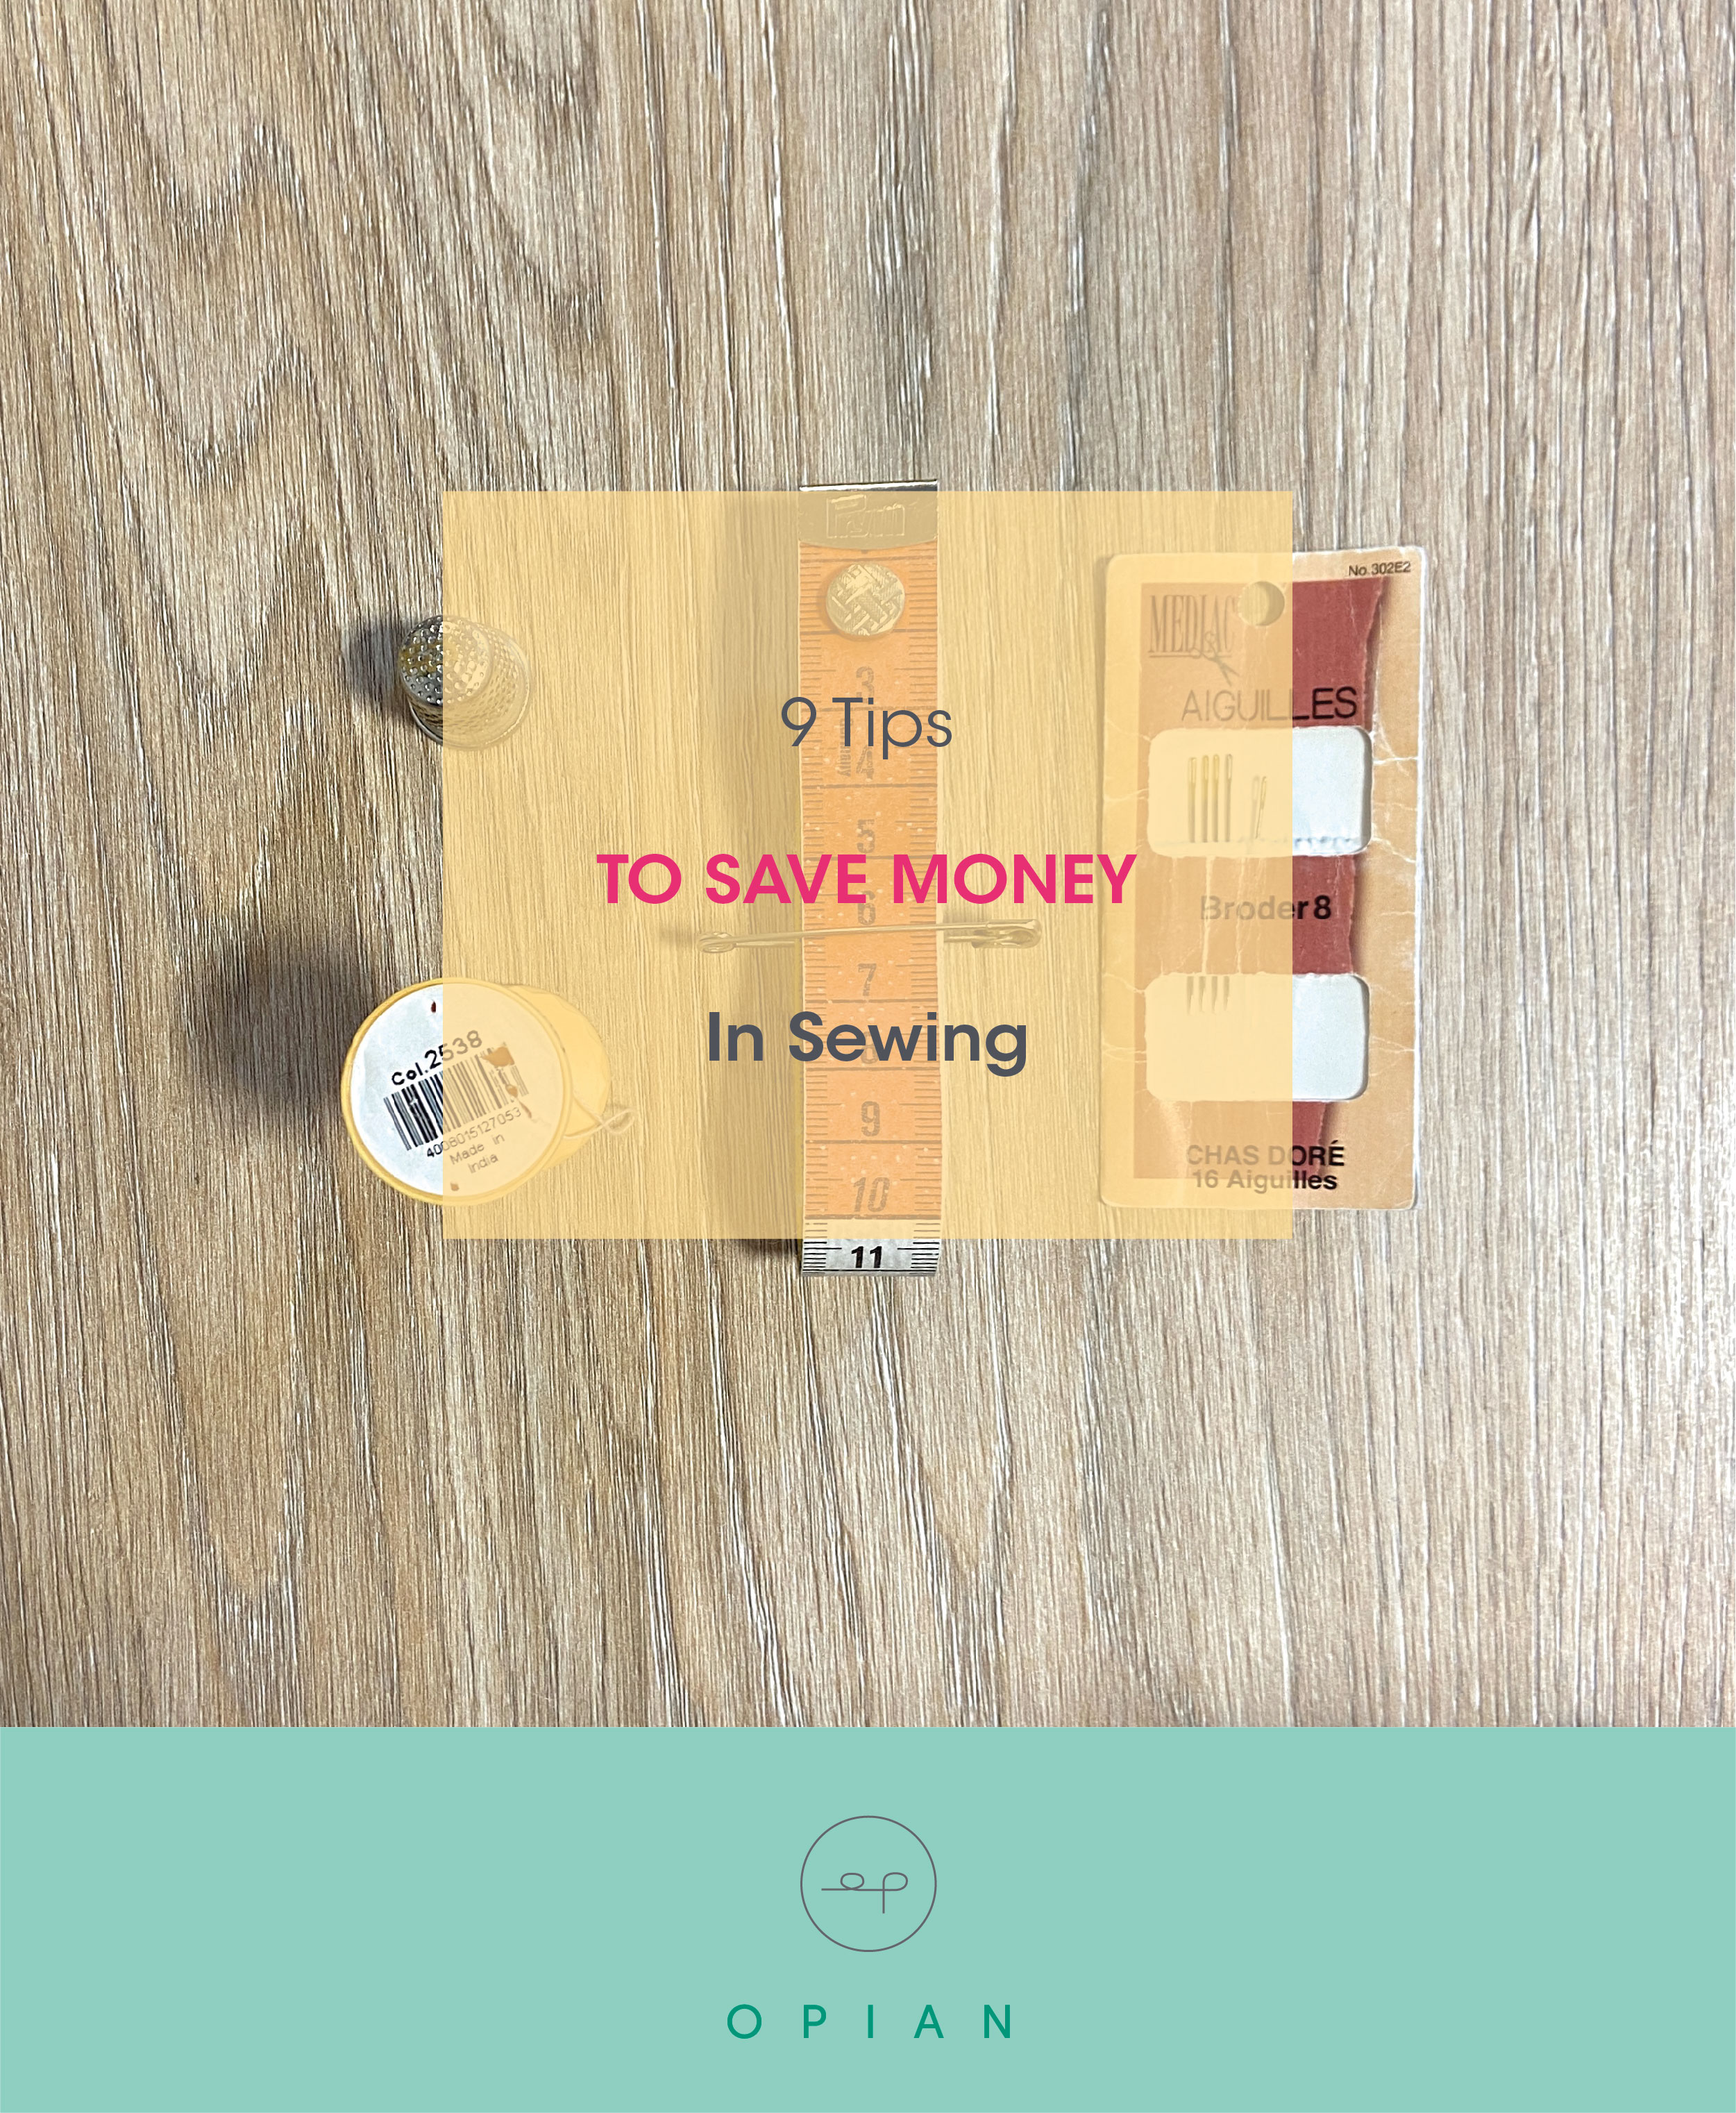 9 tips tu reduce your expenses in sewing